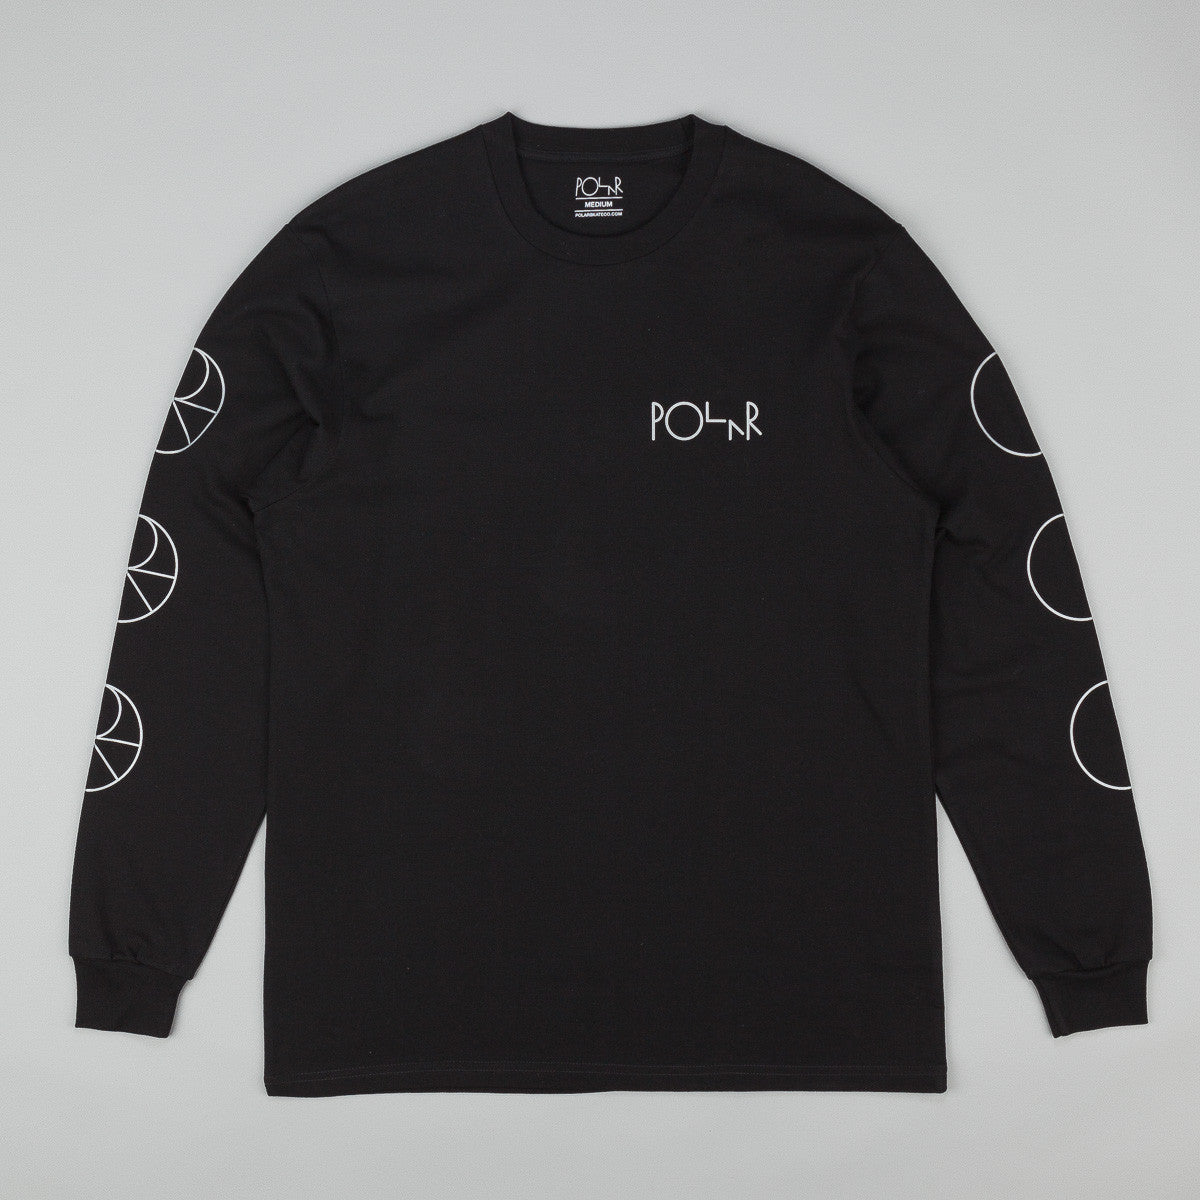 Polar Reflective Long Sleeve T-Shirt - Black